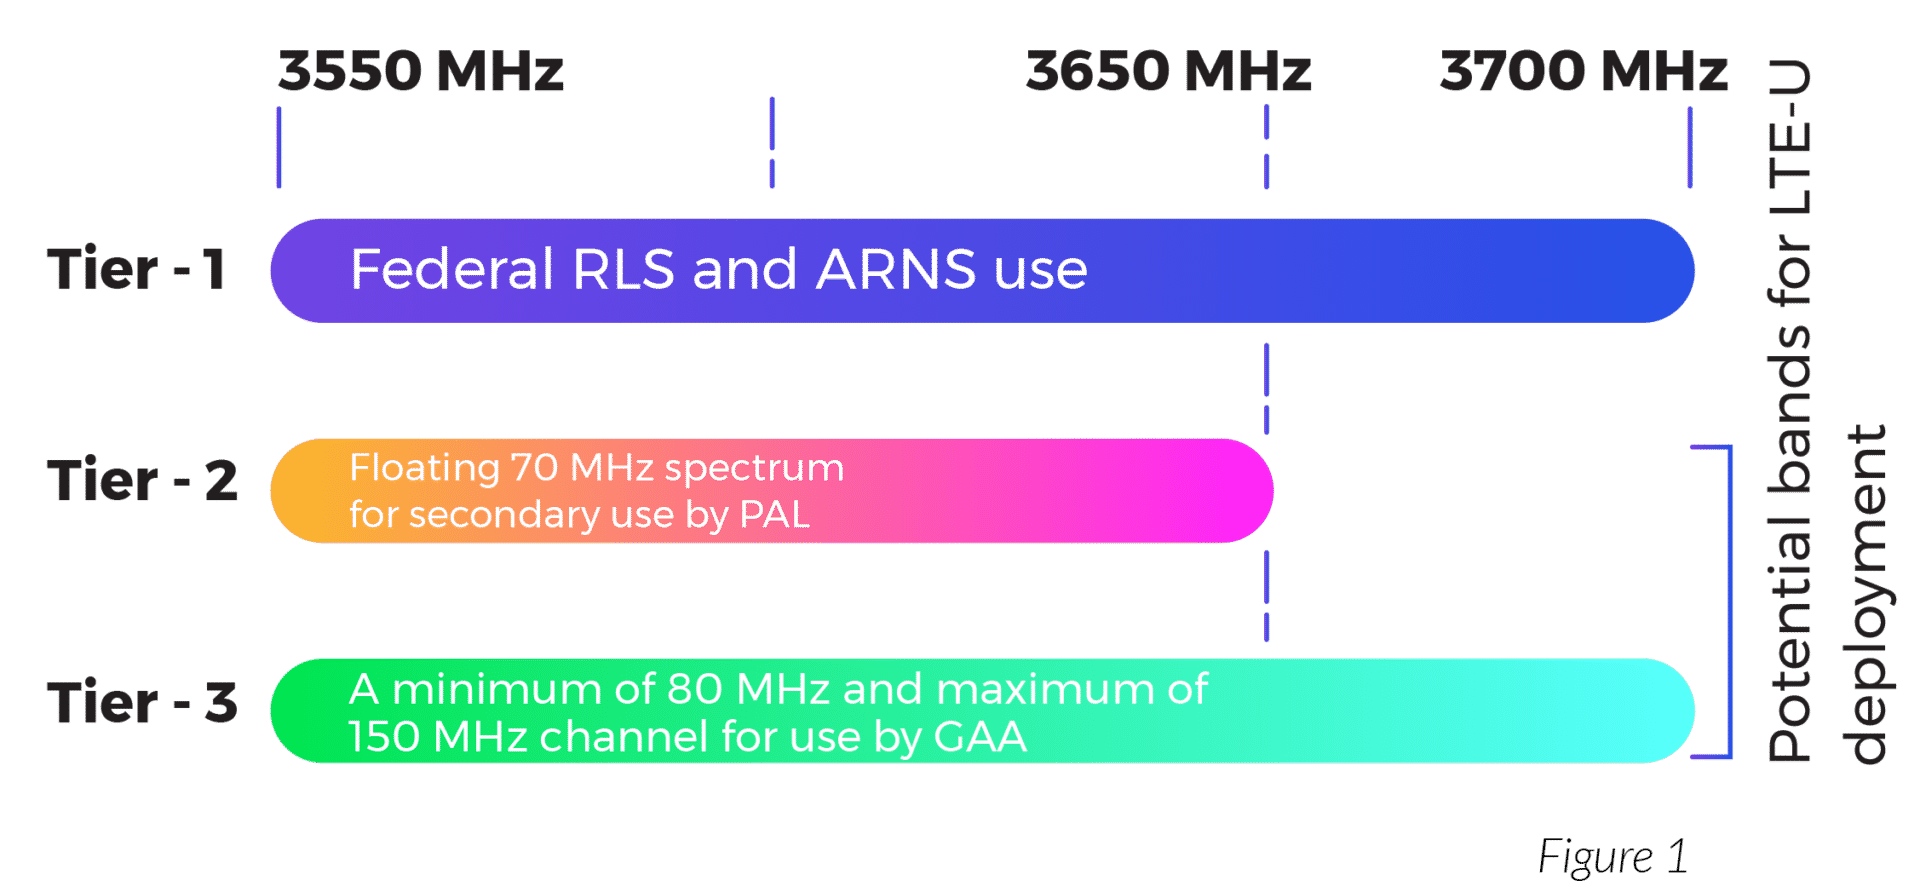 What is CBRS? - LTE in 3.5 GHz Shared Spectrum - General Authorized Access